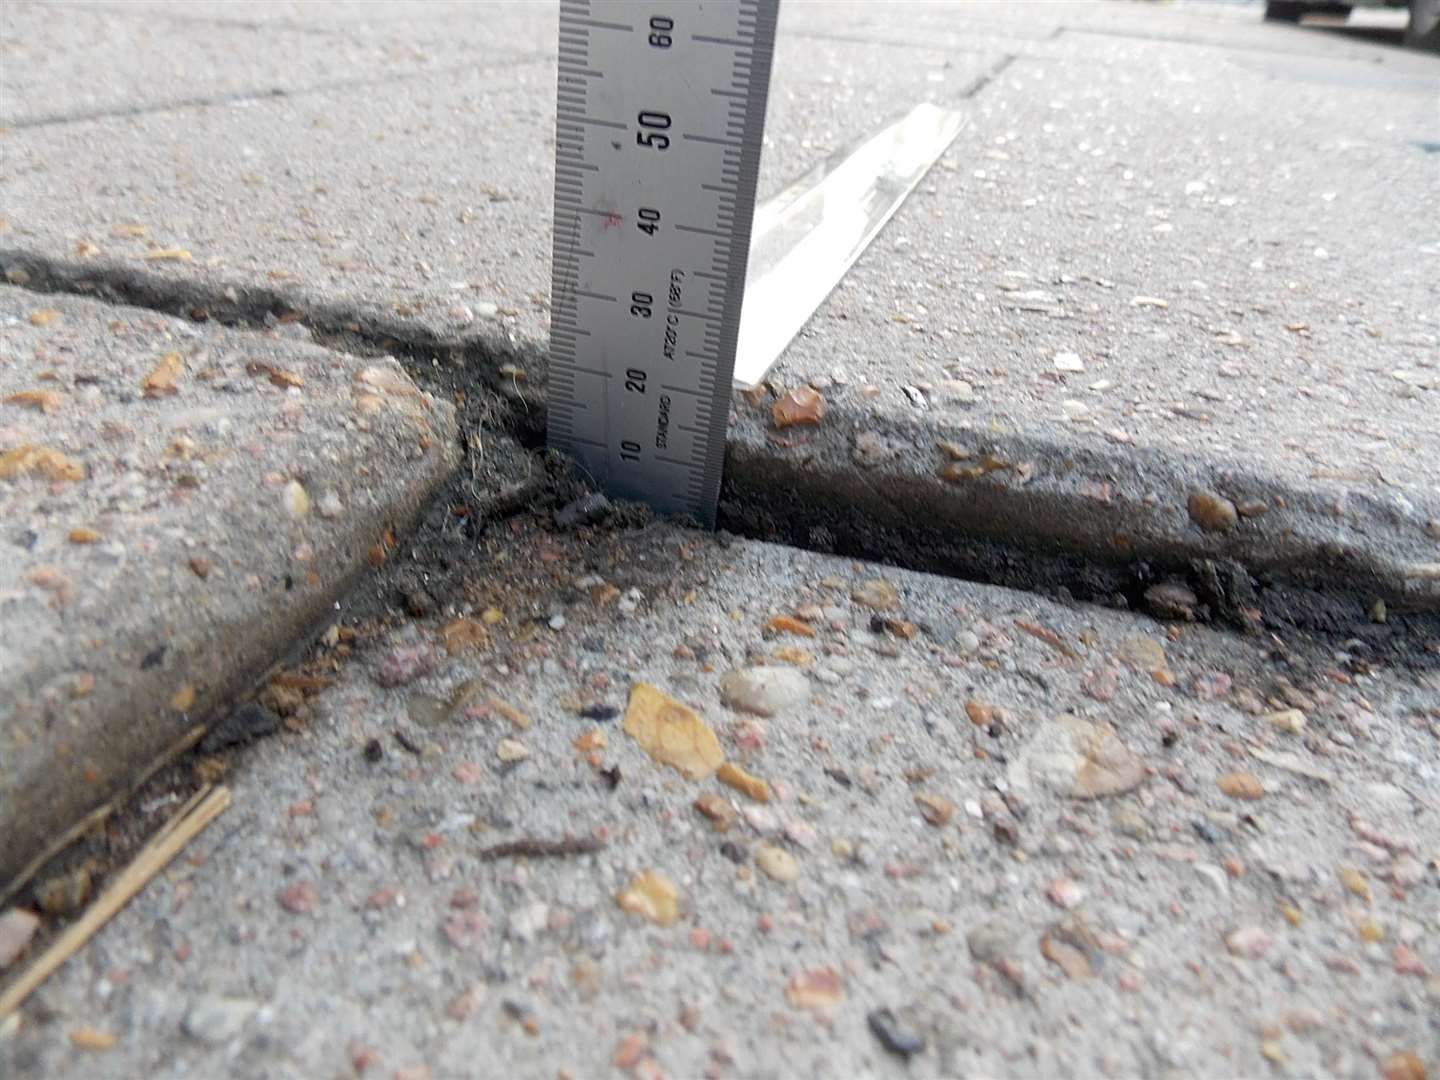 The gap in the paving stone was measured at 22mm (6999041)